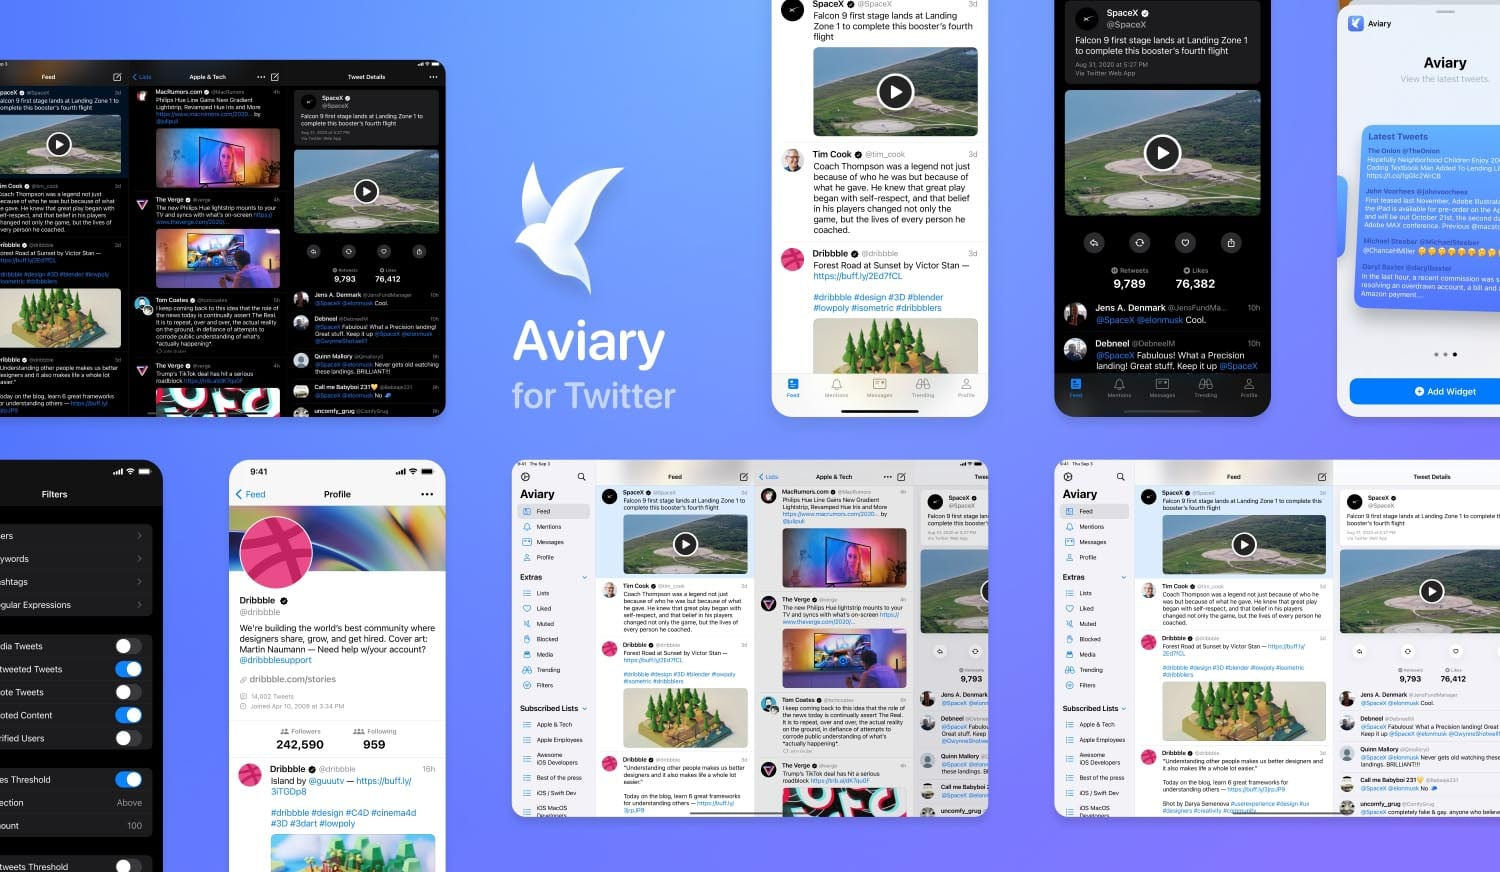 Aviary for Twitter Overview